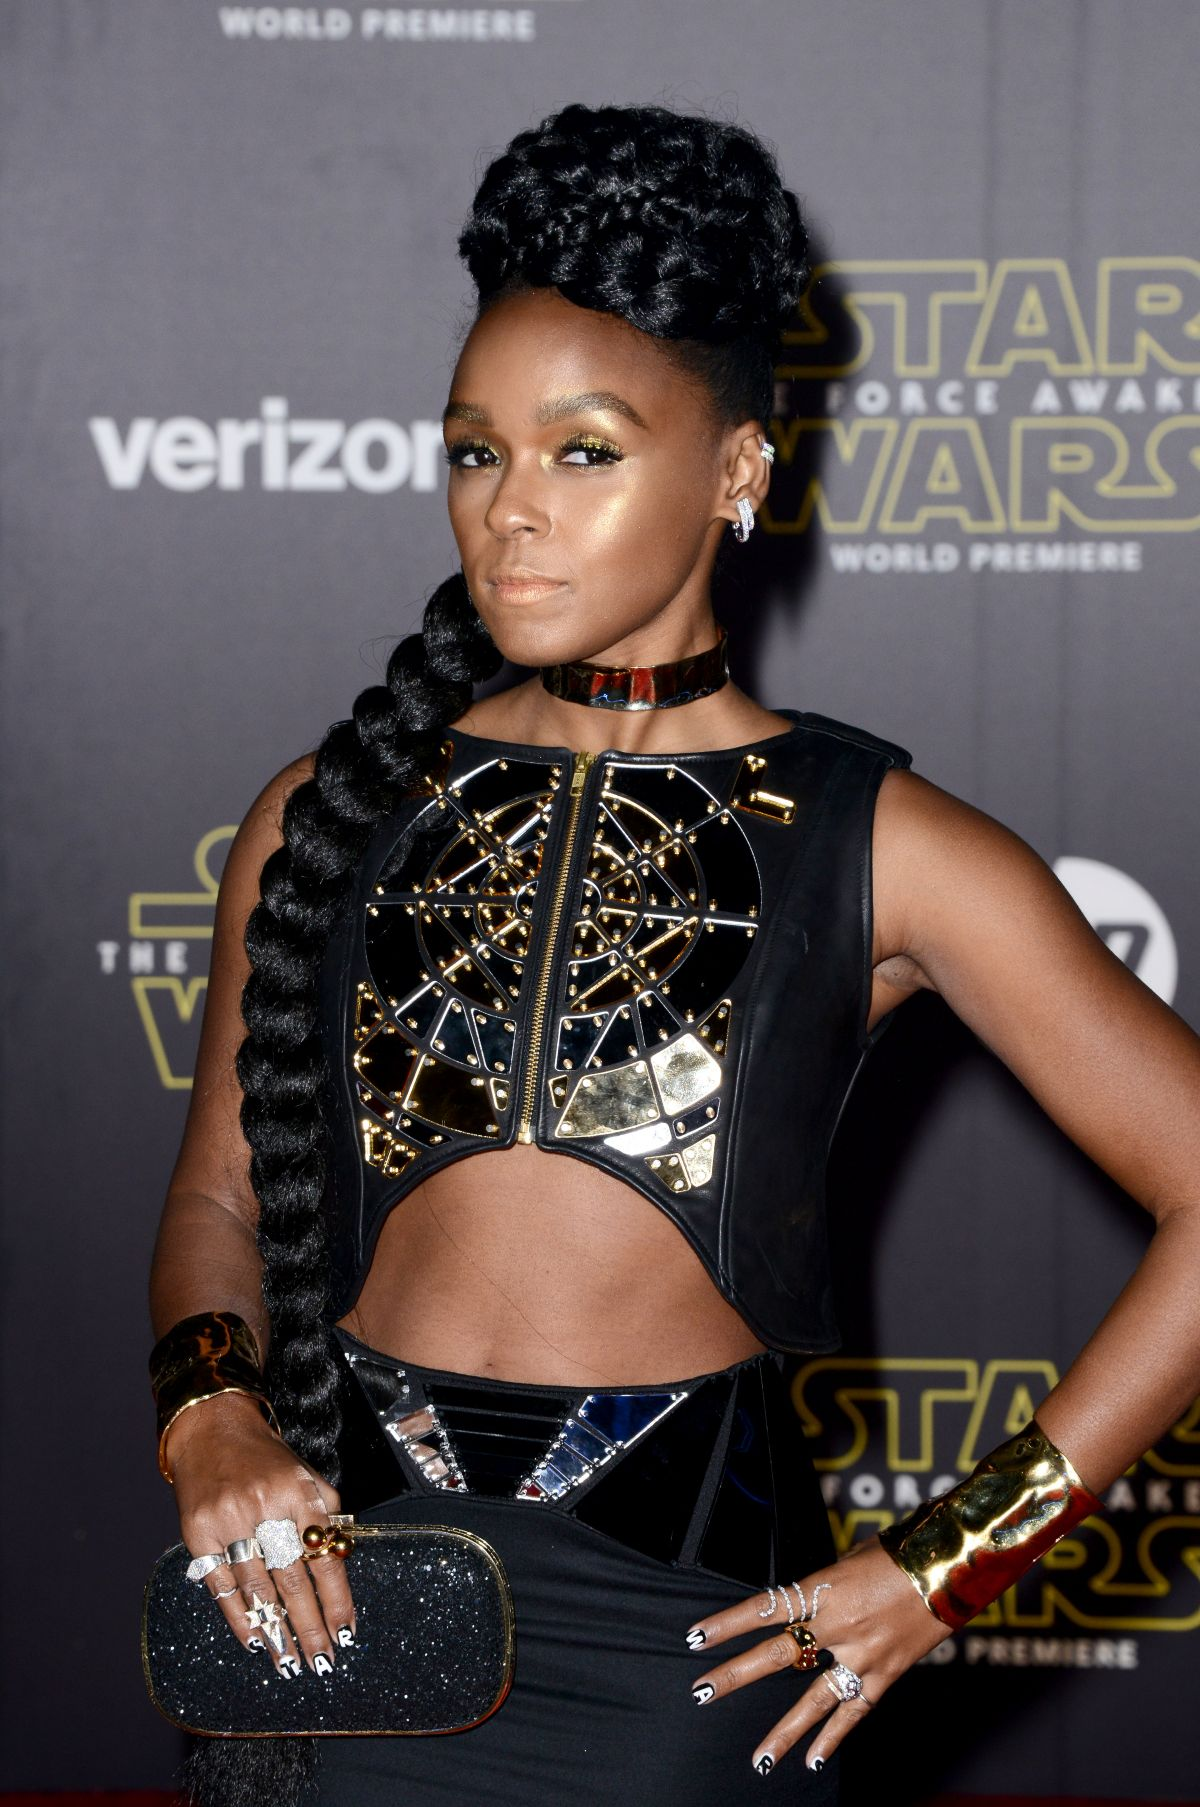 JANELLE MONAE at Star Wars: Episode VII – The Force Awakens Premiere in Hollywood 12/14/2015